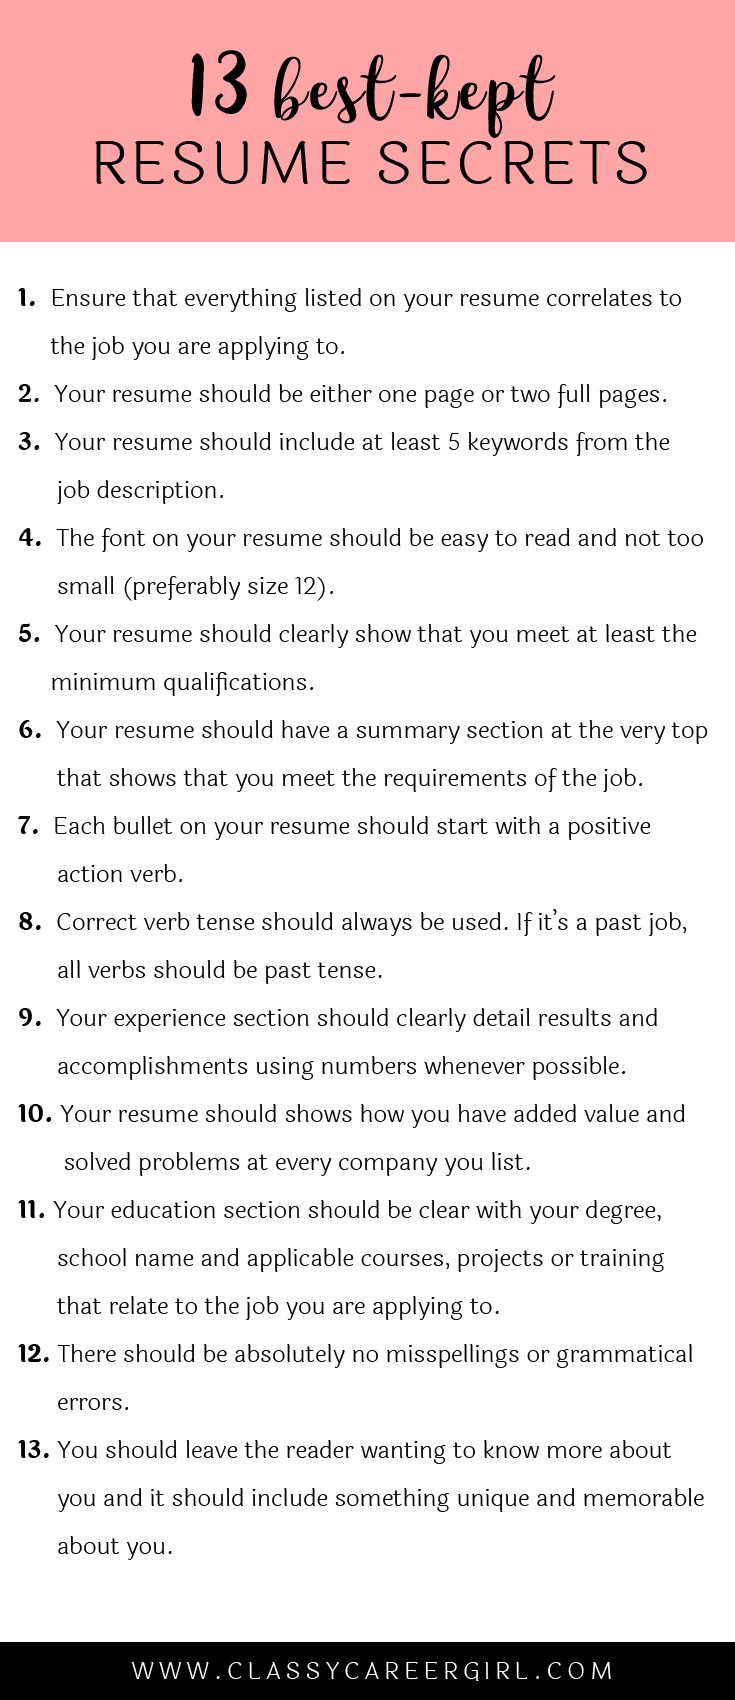 Opposenewapstandardsus  Seductive  Ideas About Resume On Pinterest  Cv Format Resume Cv And  With Luxury Some Hiring Managers Will Toss Your Resume Out If You Dont Know These  With Attractive Activity Director Resume Also Teacher Assistant Resume Objective In Addition Resume For Free Online And Ssis Developer Resume As Well As Mcdonalds Resume Skills Additionally Entry Level Chemist Resume From Pinterestcom With Opposenewapstandardsus  Luxury  Ideas About Resume On Pinterest  Cv Format Resume Cv And  With Attractive Some Hiring Managers Will Toss Your Resume Out If You Dont Know These  And Seductive Activity Director Resume Also Teacher Assistant Resume Objective In Addition Resume For Free Online From Pinterestcom